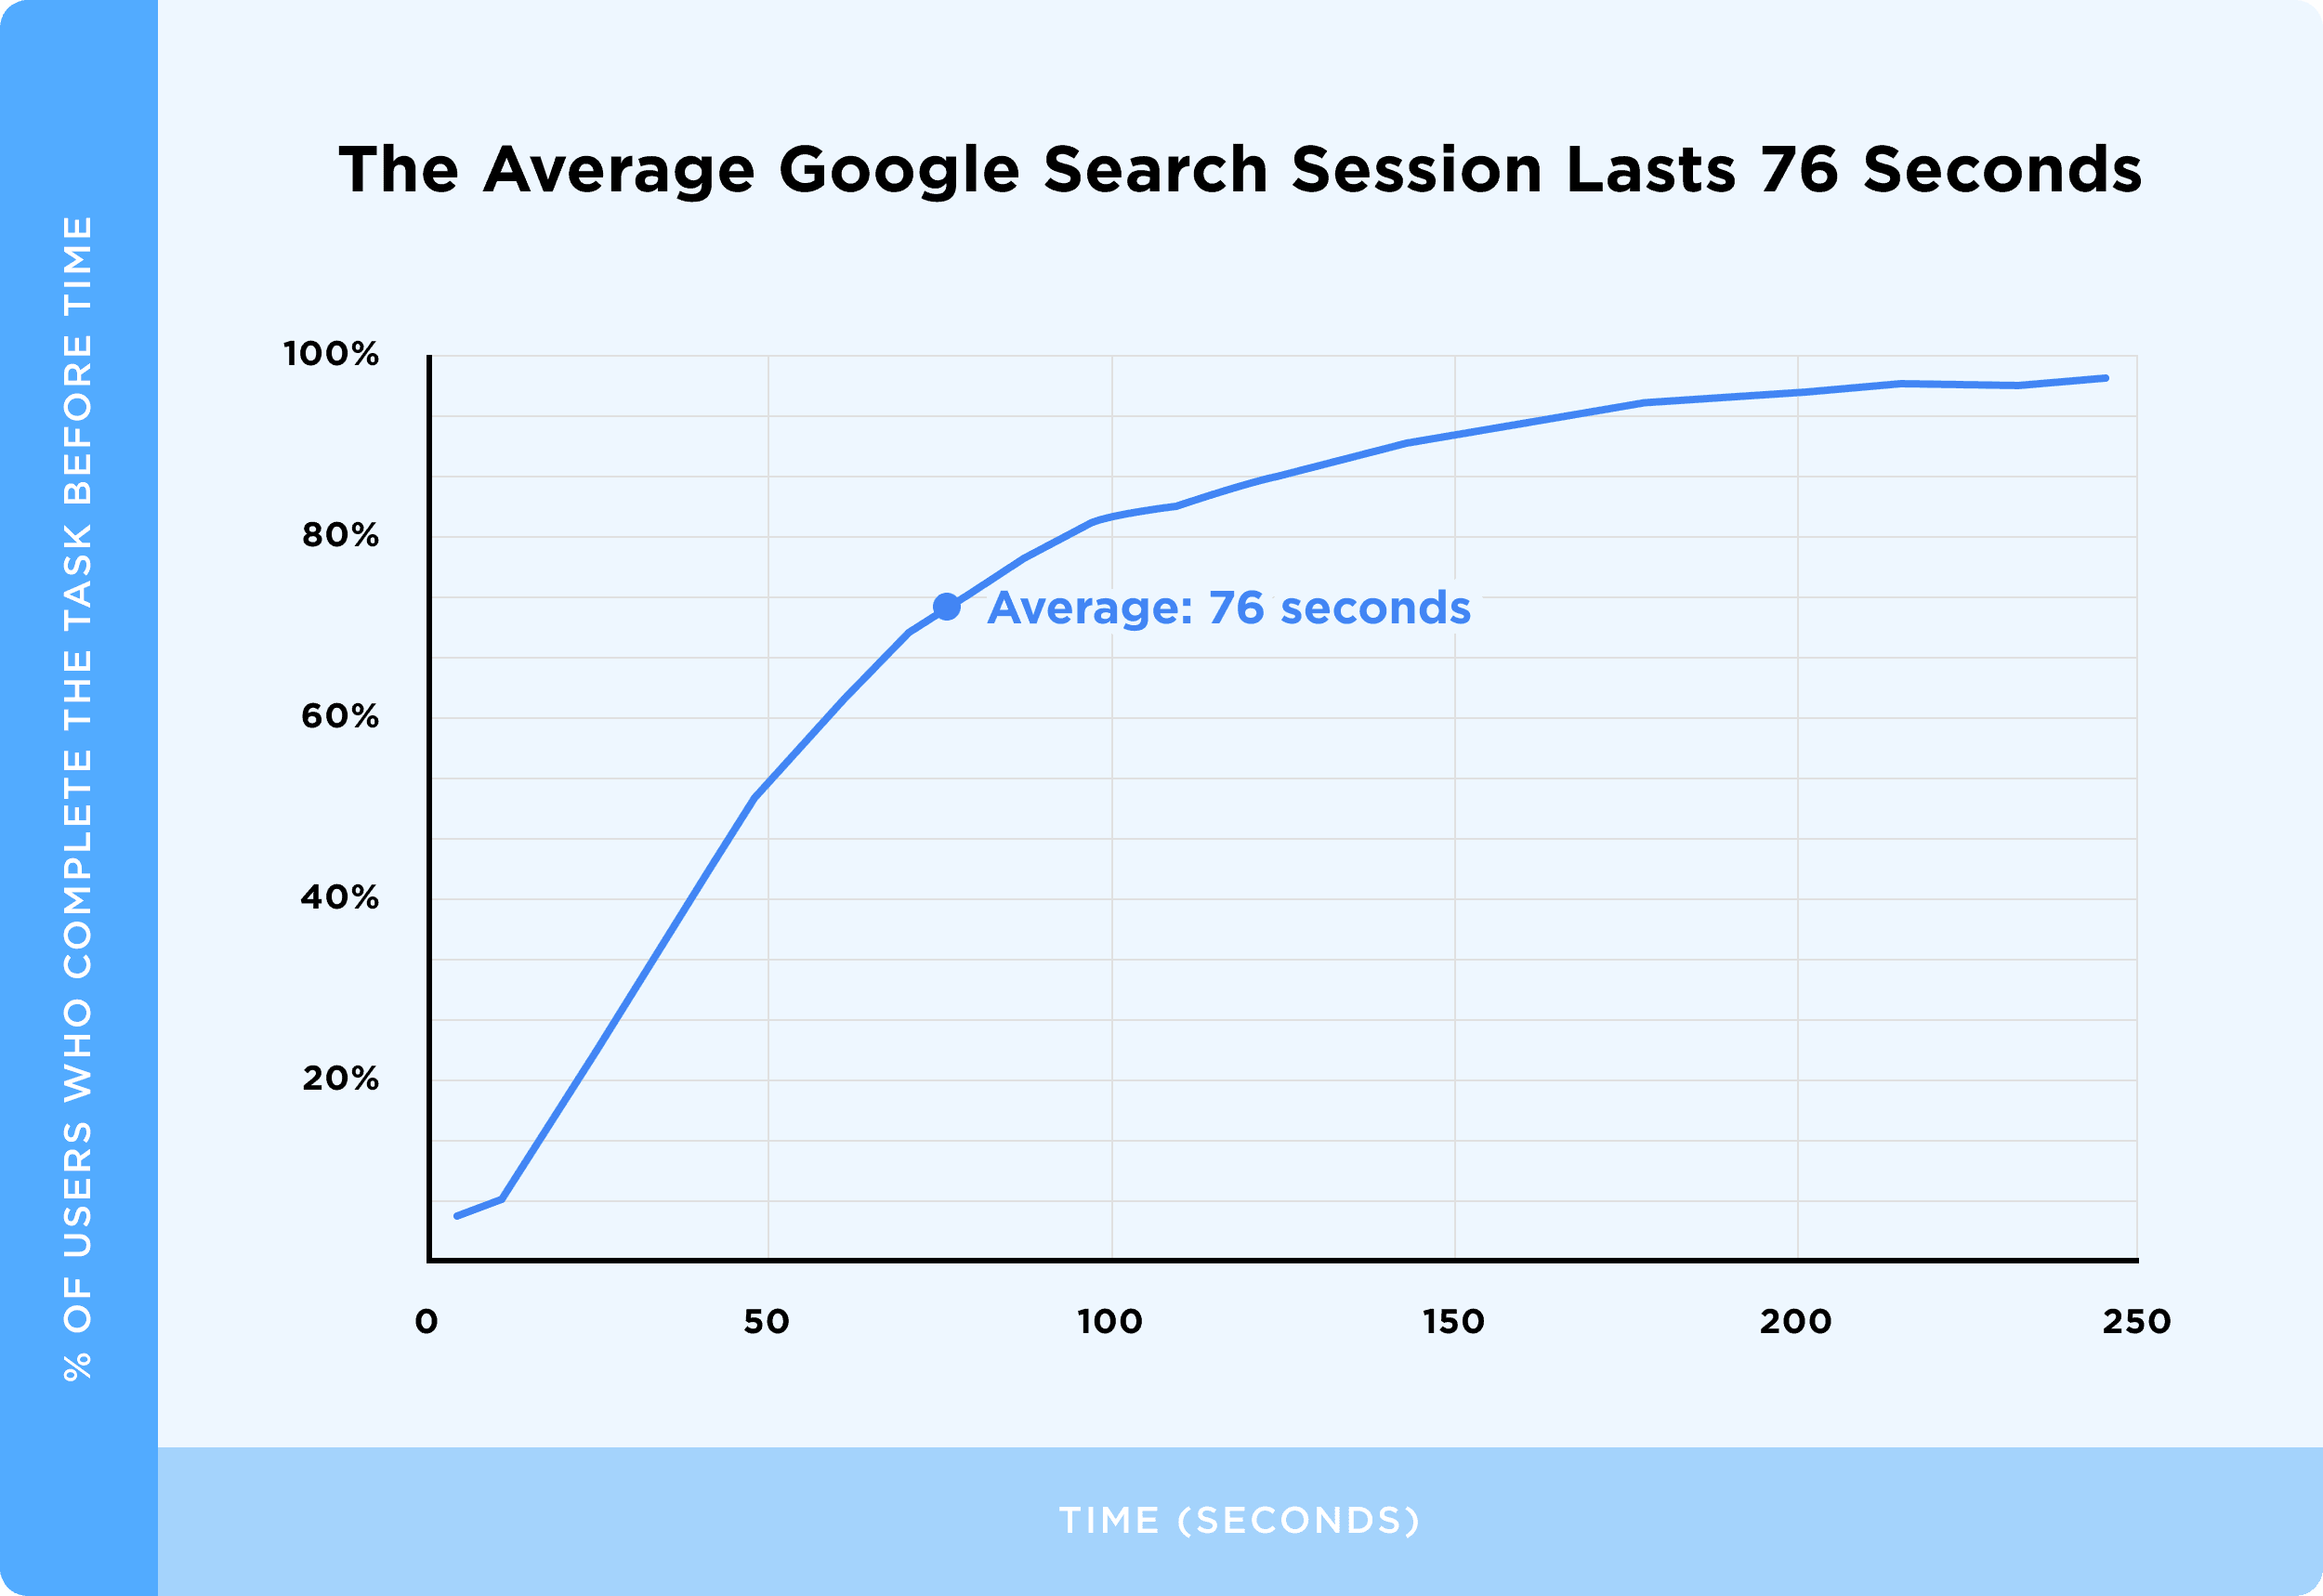 The Average Google Search Session Lasts 76 Seconds